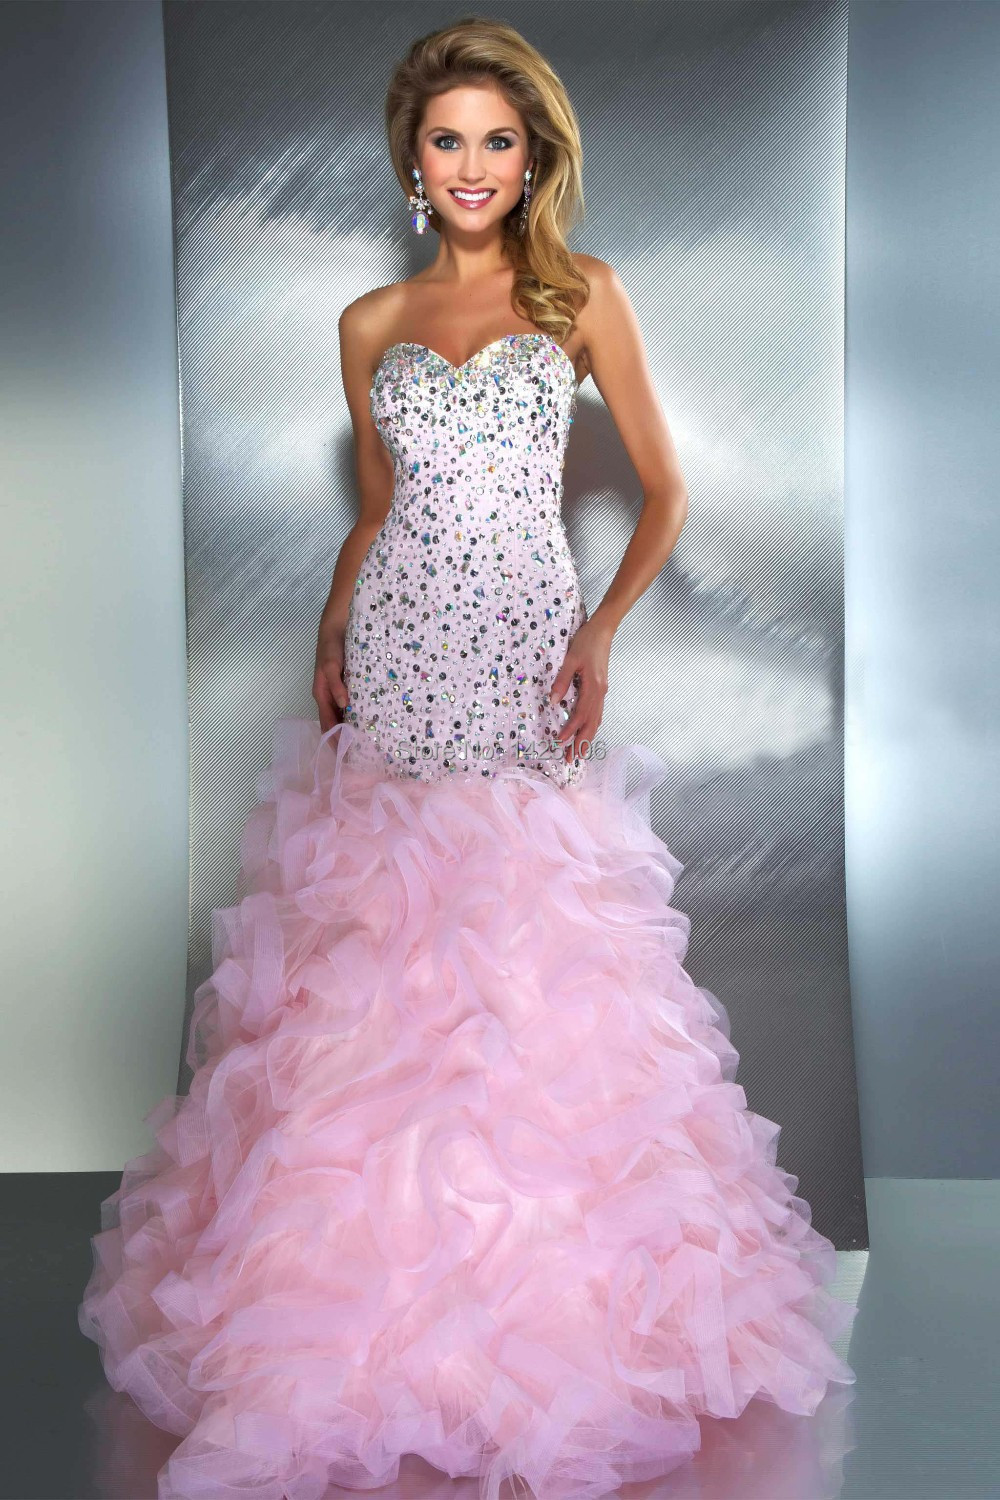 High Quality Fishtail Prom Dresses Promotion-Shop for High Quality ...